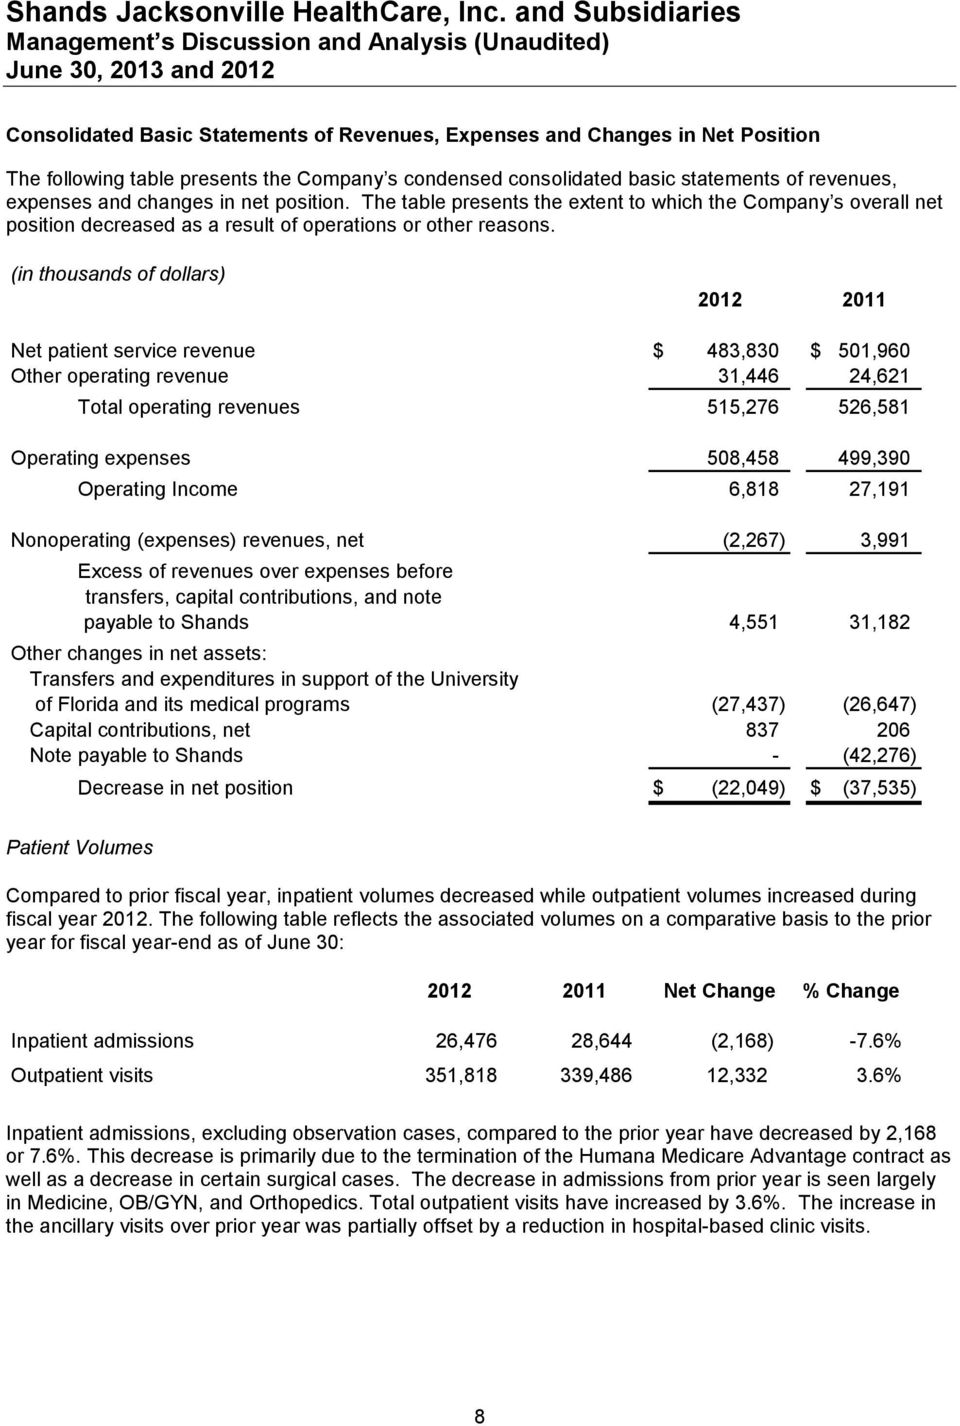 (in thousands of dollars) 2012 2011 Net patient service revenue $ 483,830 $ 501,960 Other operating revenue 31,446 24,621 Total operating revenues 515,276 526,581 Operating expenses 508,458 499,390